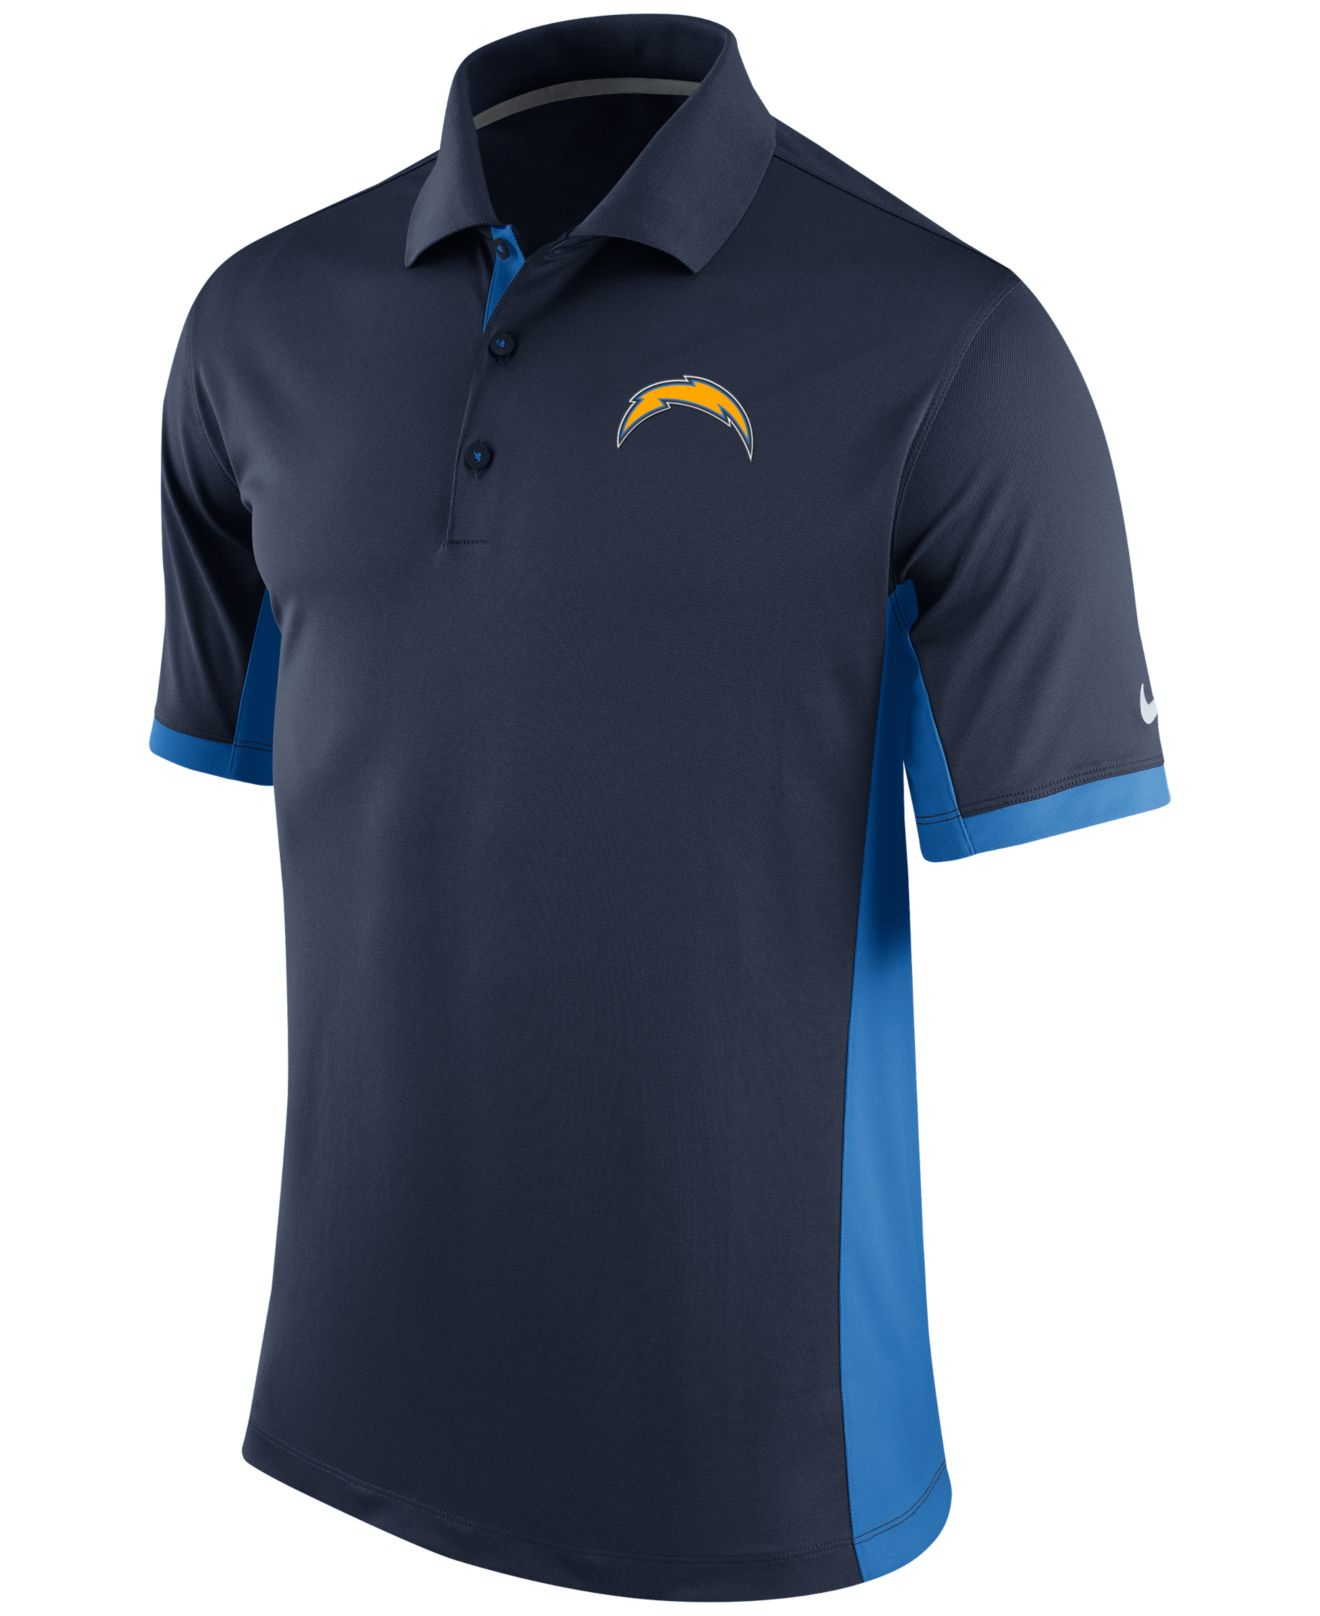 San Diego Chargers Dress: Nike Men's San Diego Chargers Team Issue Polo In